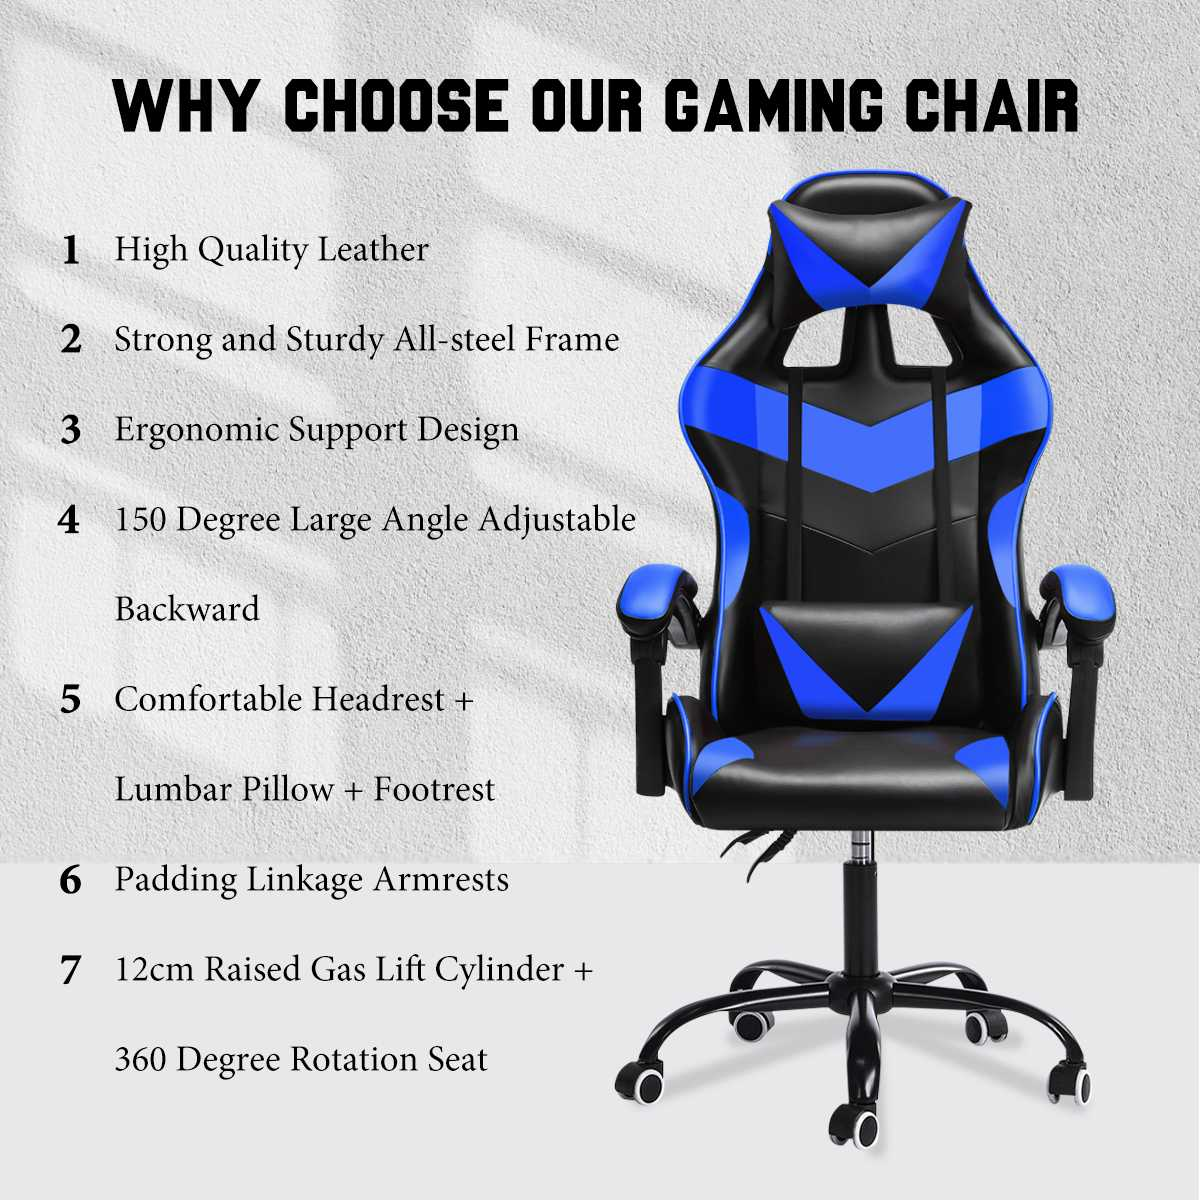 Hfececfb6646647db8cbadf071d6e967ab - Office Gaming Chair with Footrest Ergonomic Office Chairs Adjustable Swivel Leather High Back Computer Desk Chair with Headrest